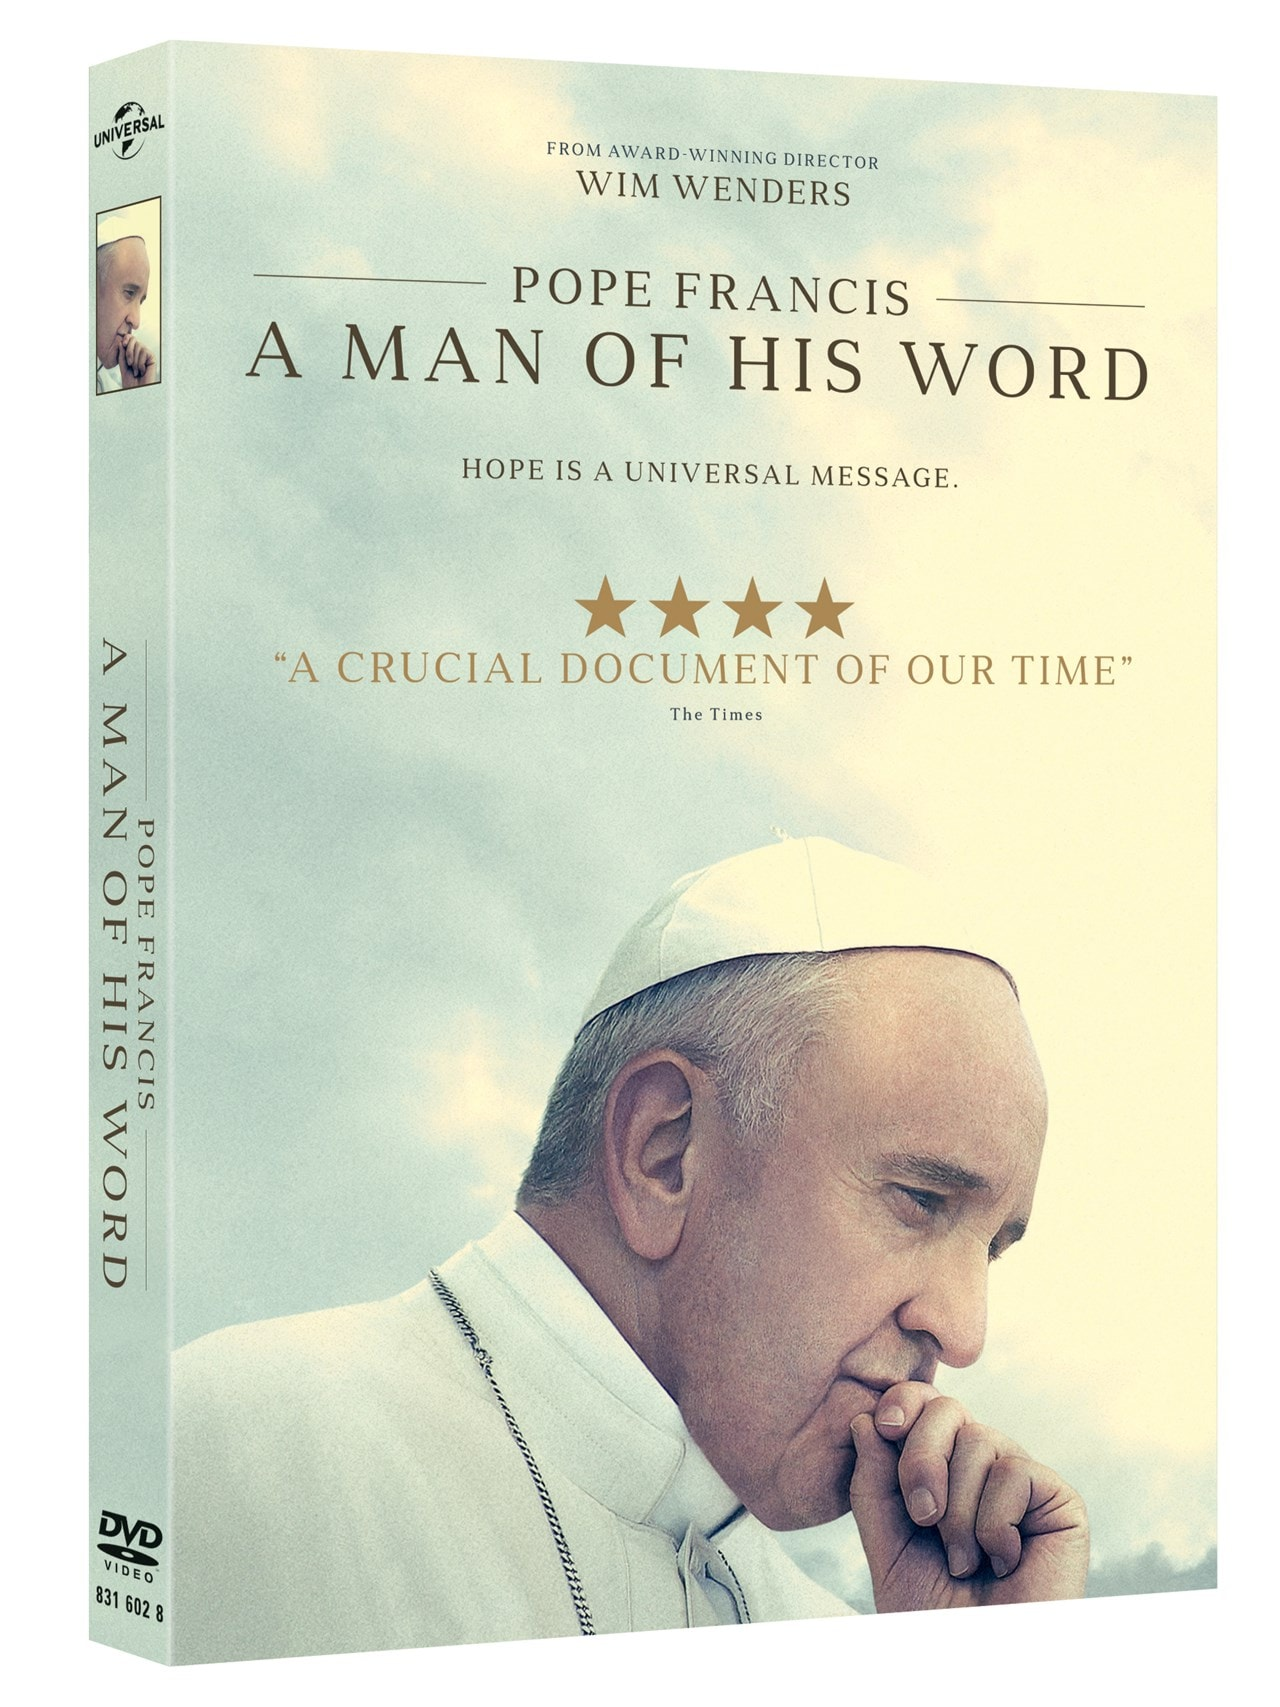 Pope Francis - A Man of His Word - 2